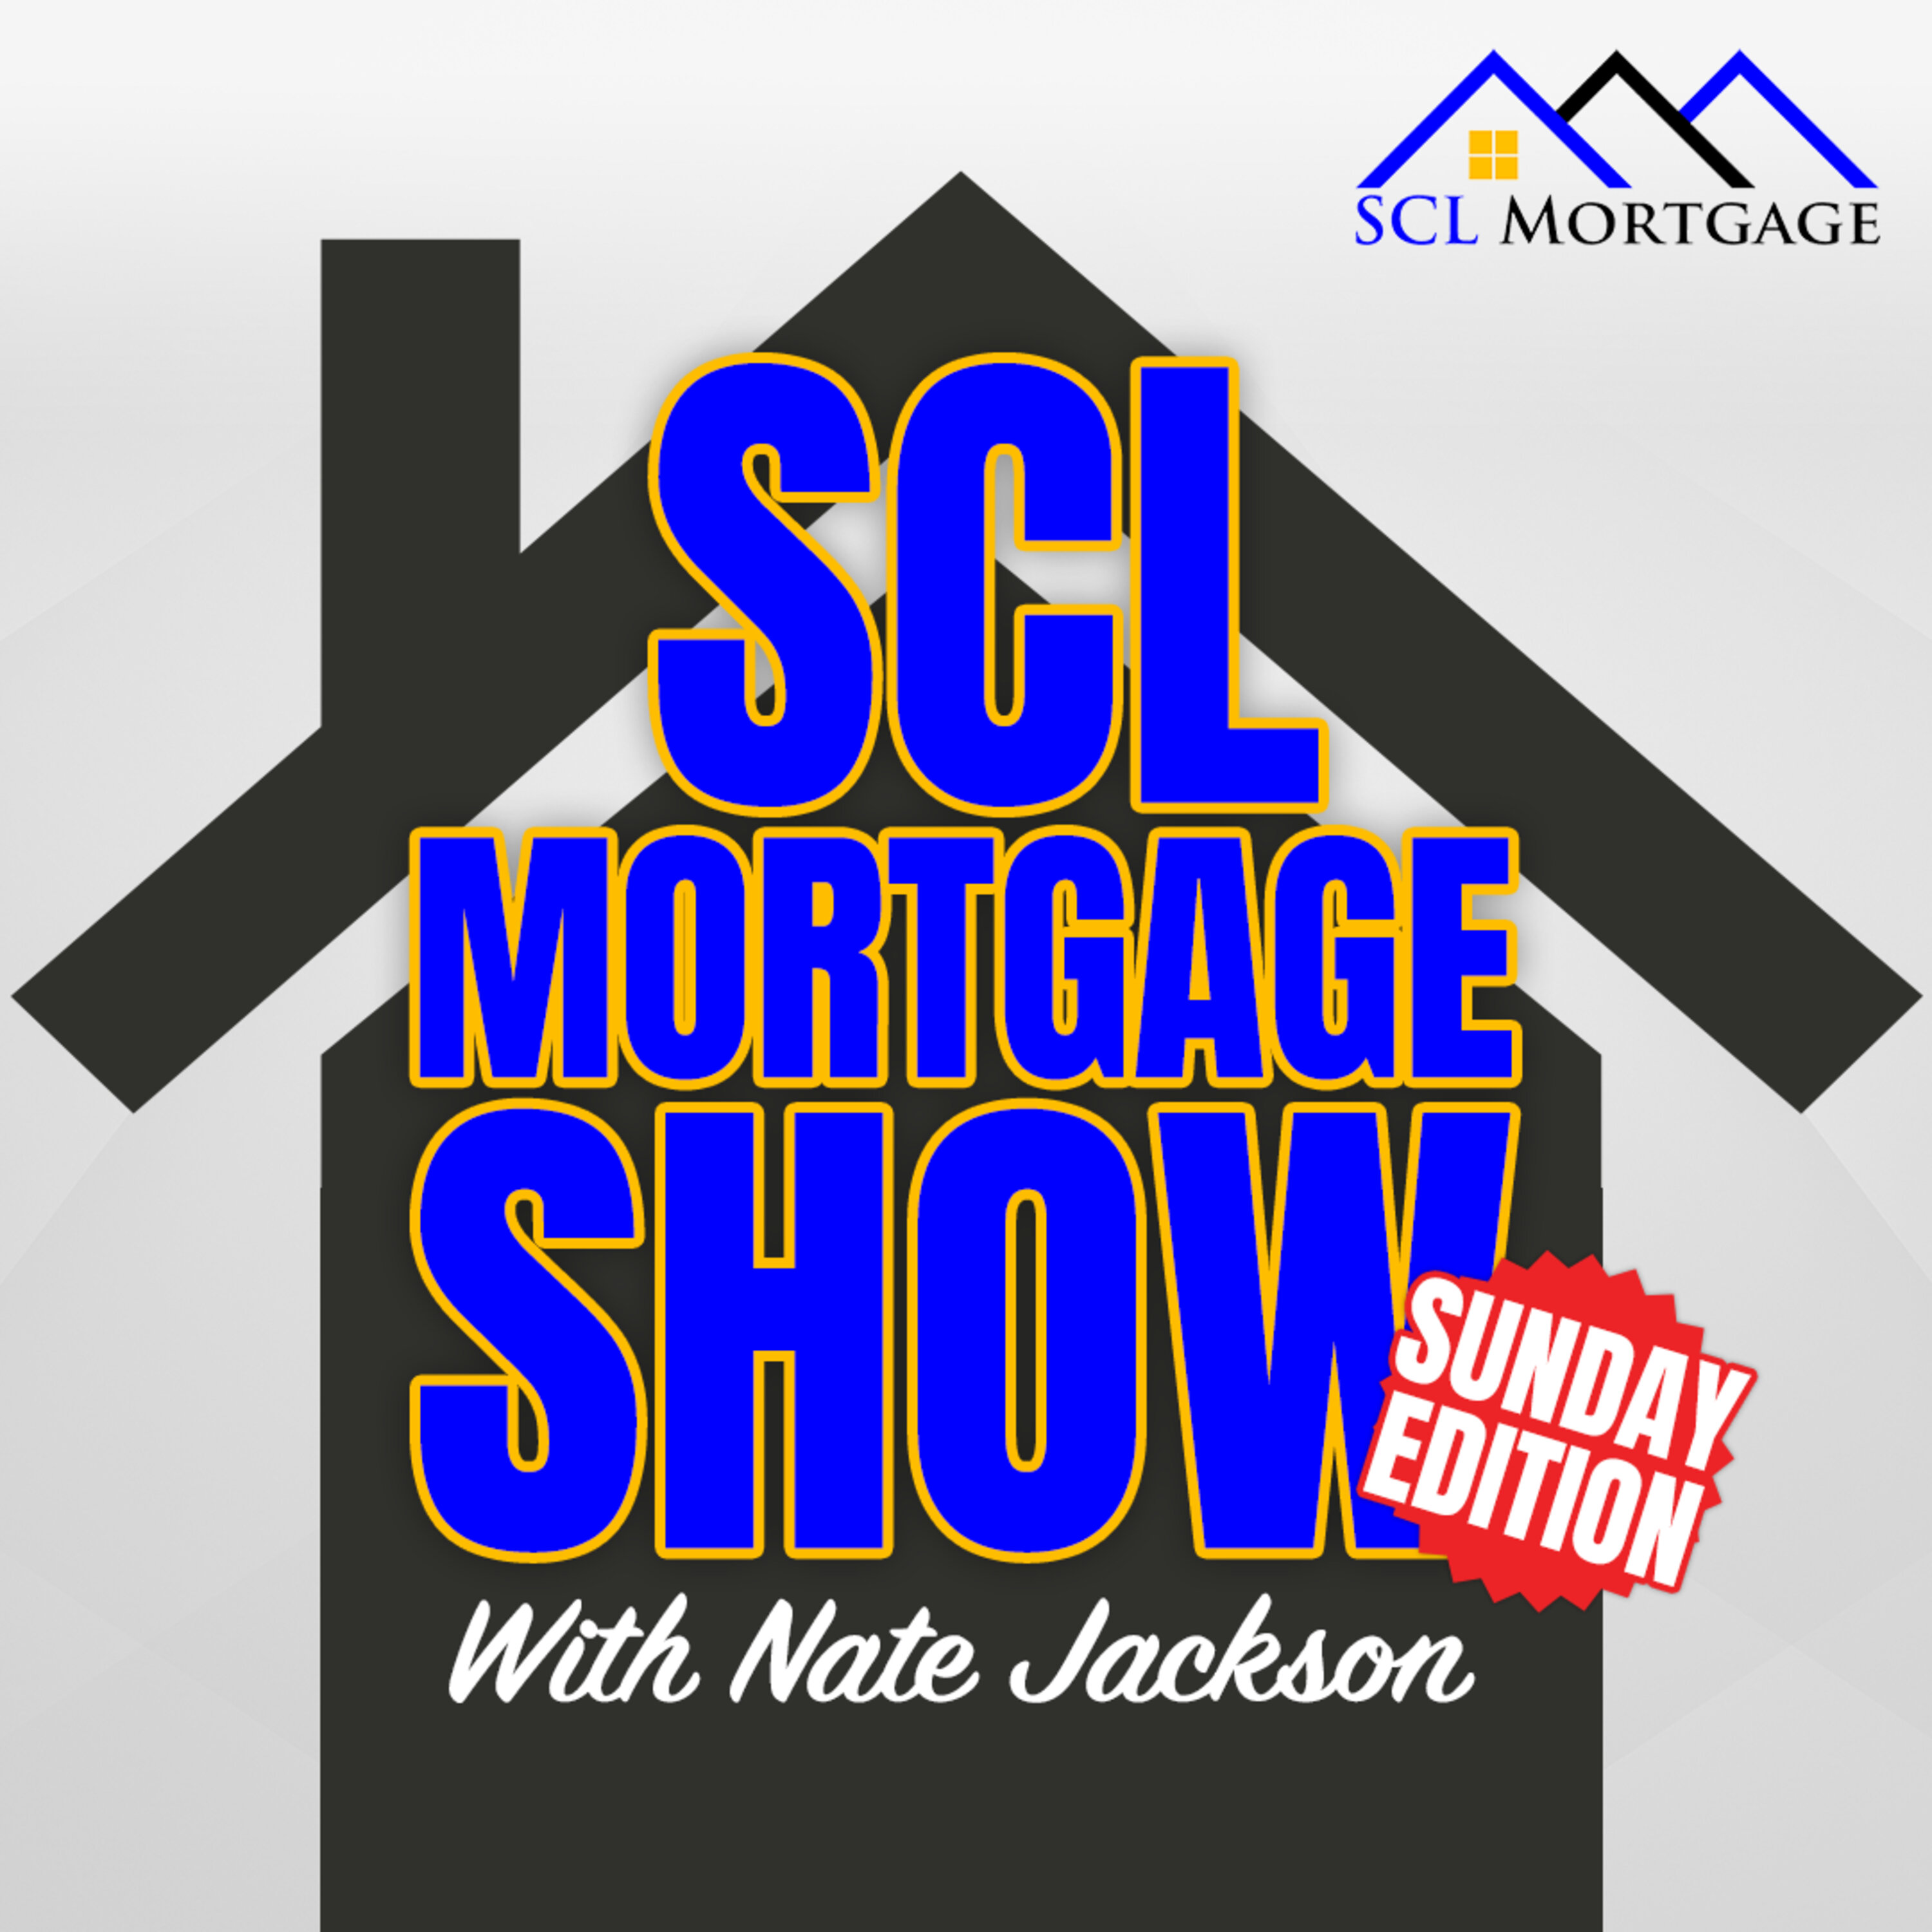 SCL Mortgage Show - Sunday Edition Podcast Cover Image